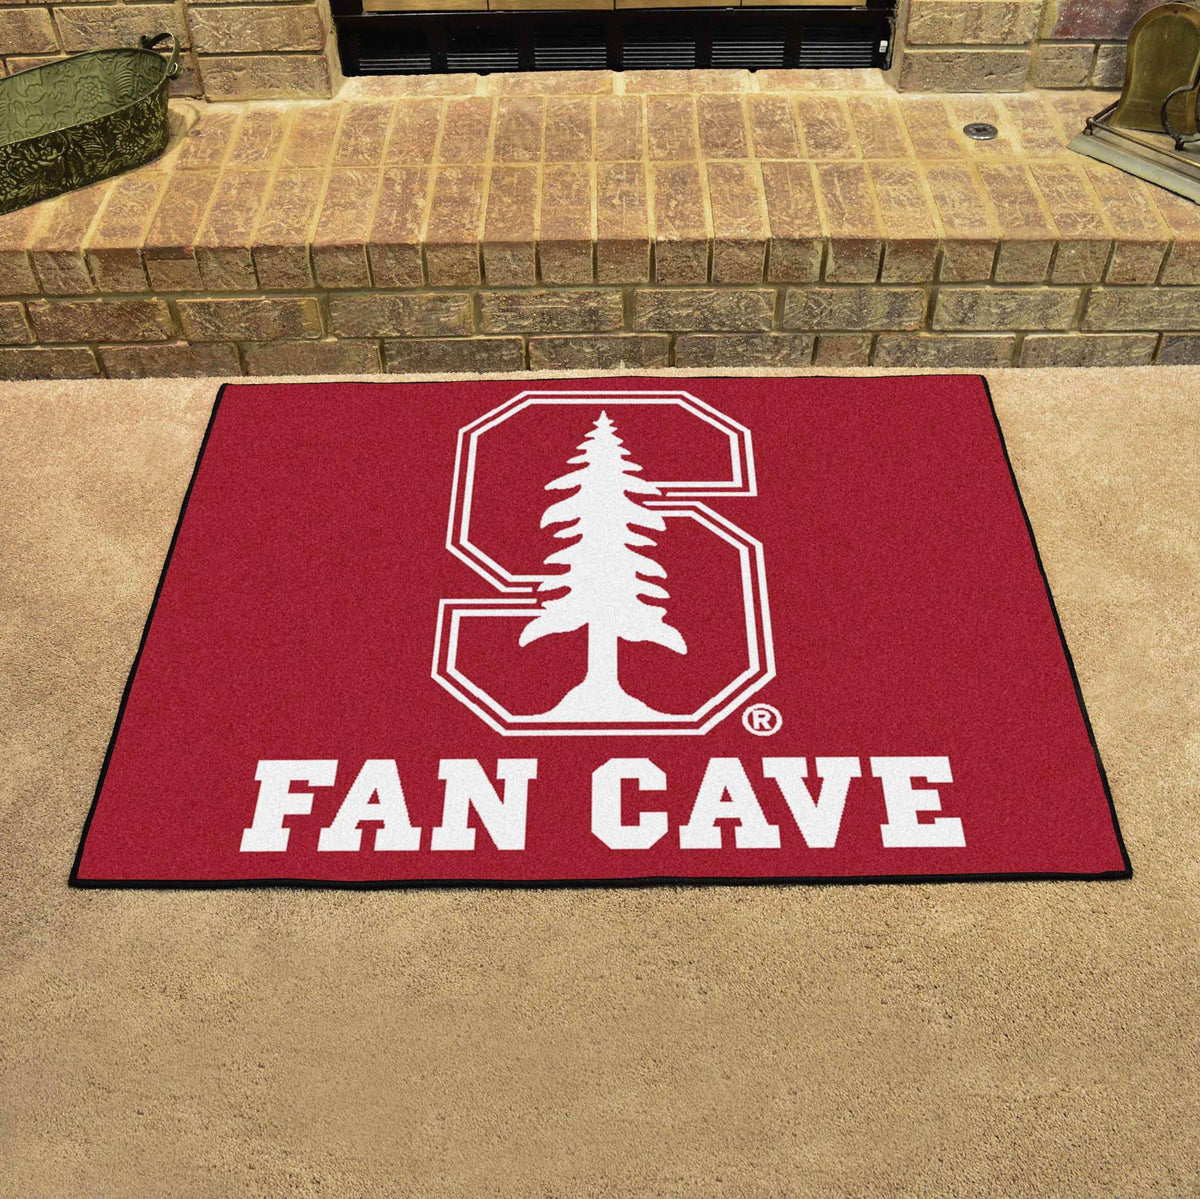 Collegiate - Fan Cave All-Star Mat Collegiate Mats, Rectangular Mats, All-Star Mat, Collegiate, Home Fan Mats Stanford